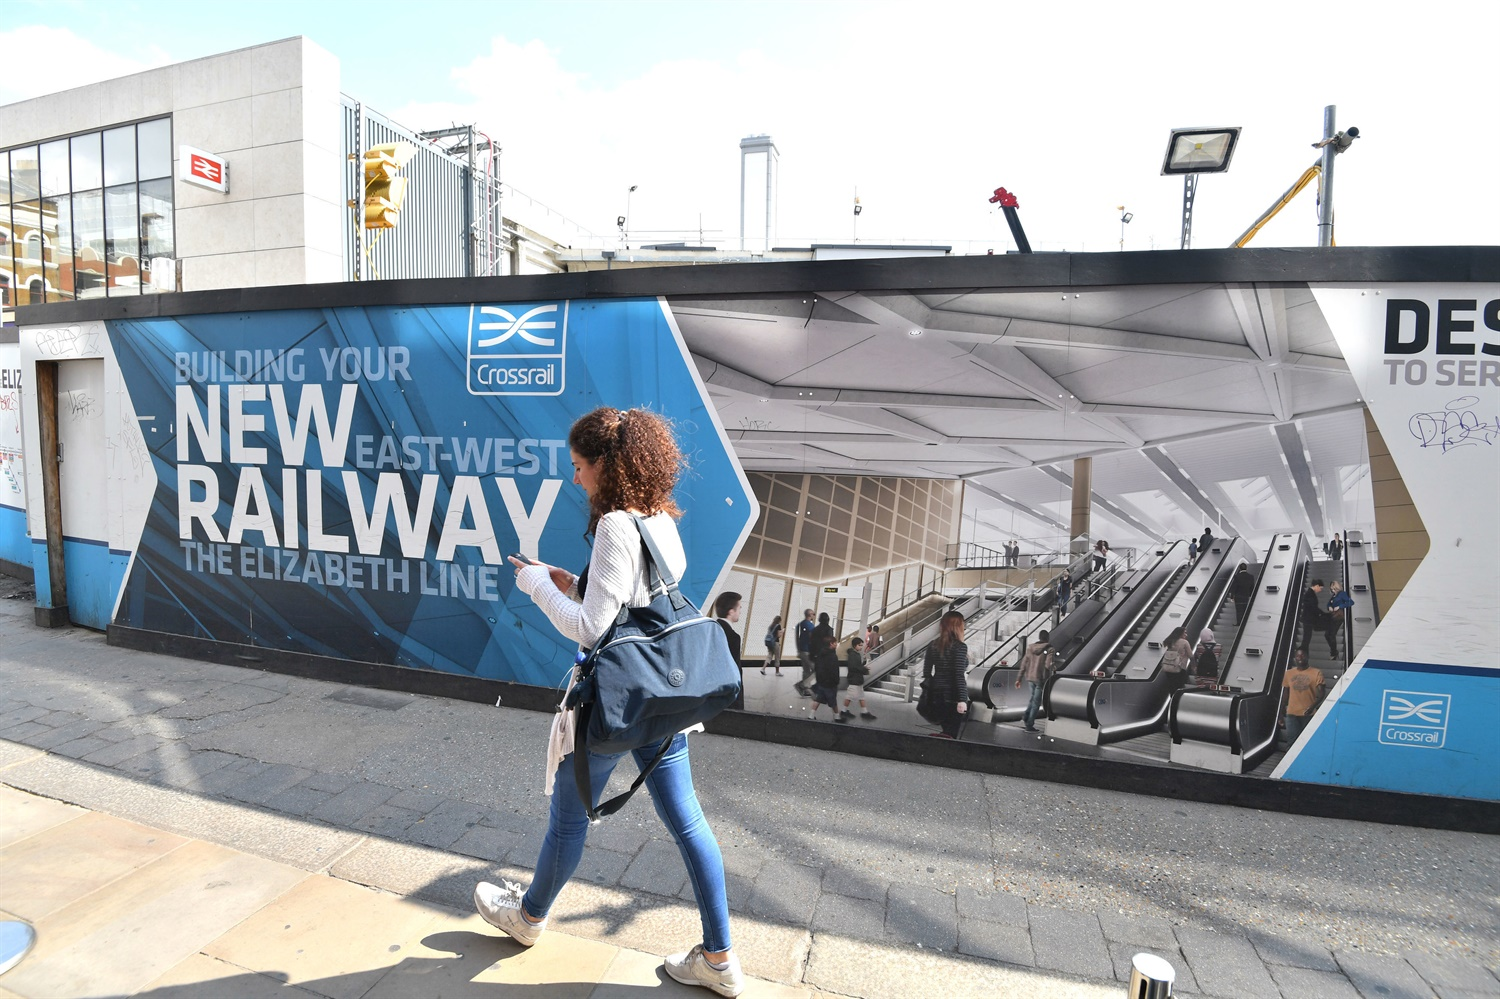 Crossrail delay to mount up £200m in lost TfL revenue, London Assembly says